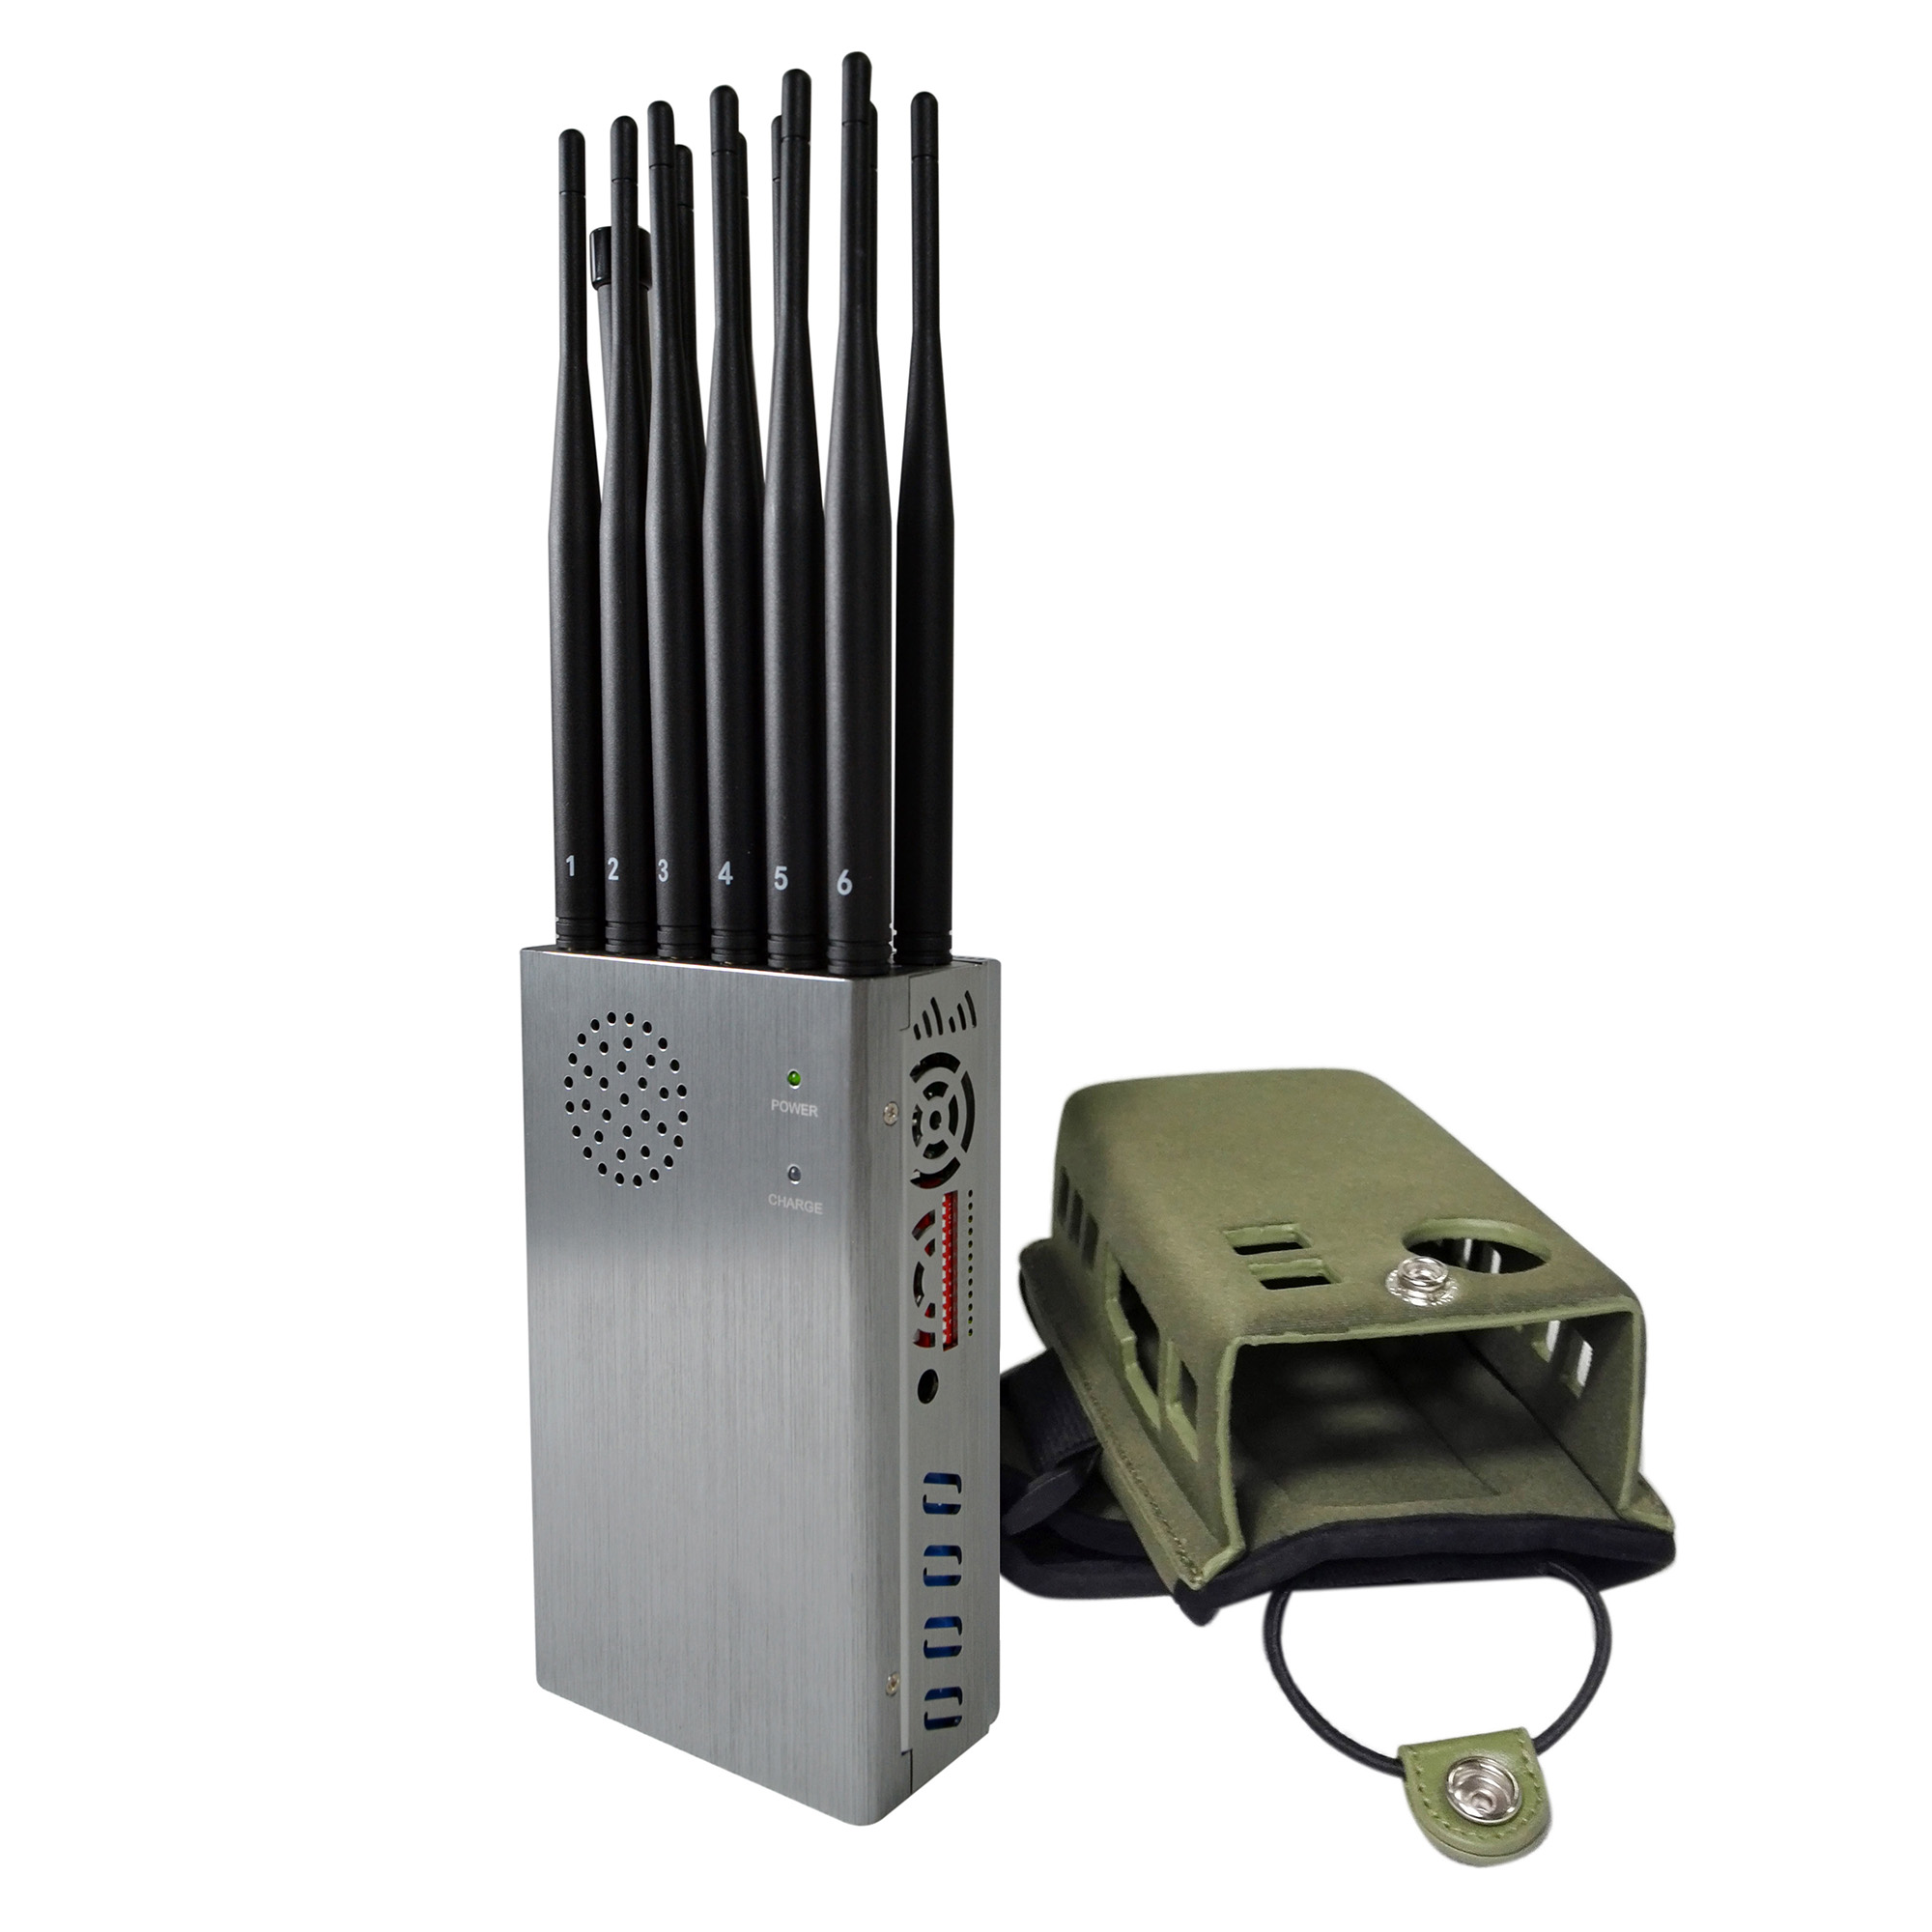 Cycle jammer products , GPS Jammer Remote Control 3G Mobile Phone GPS Signal Jammer Blocker